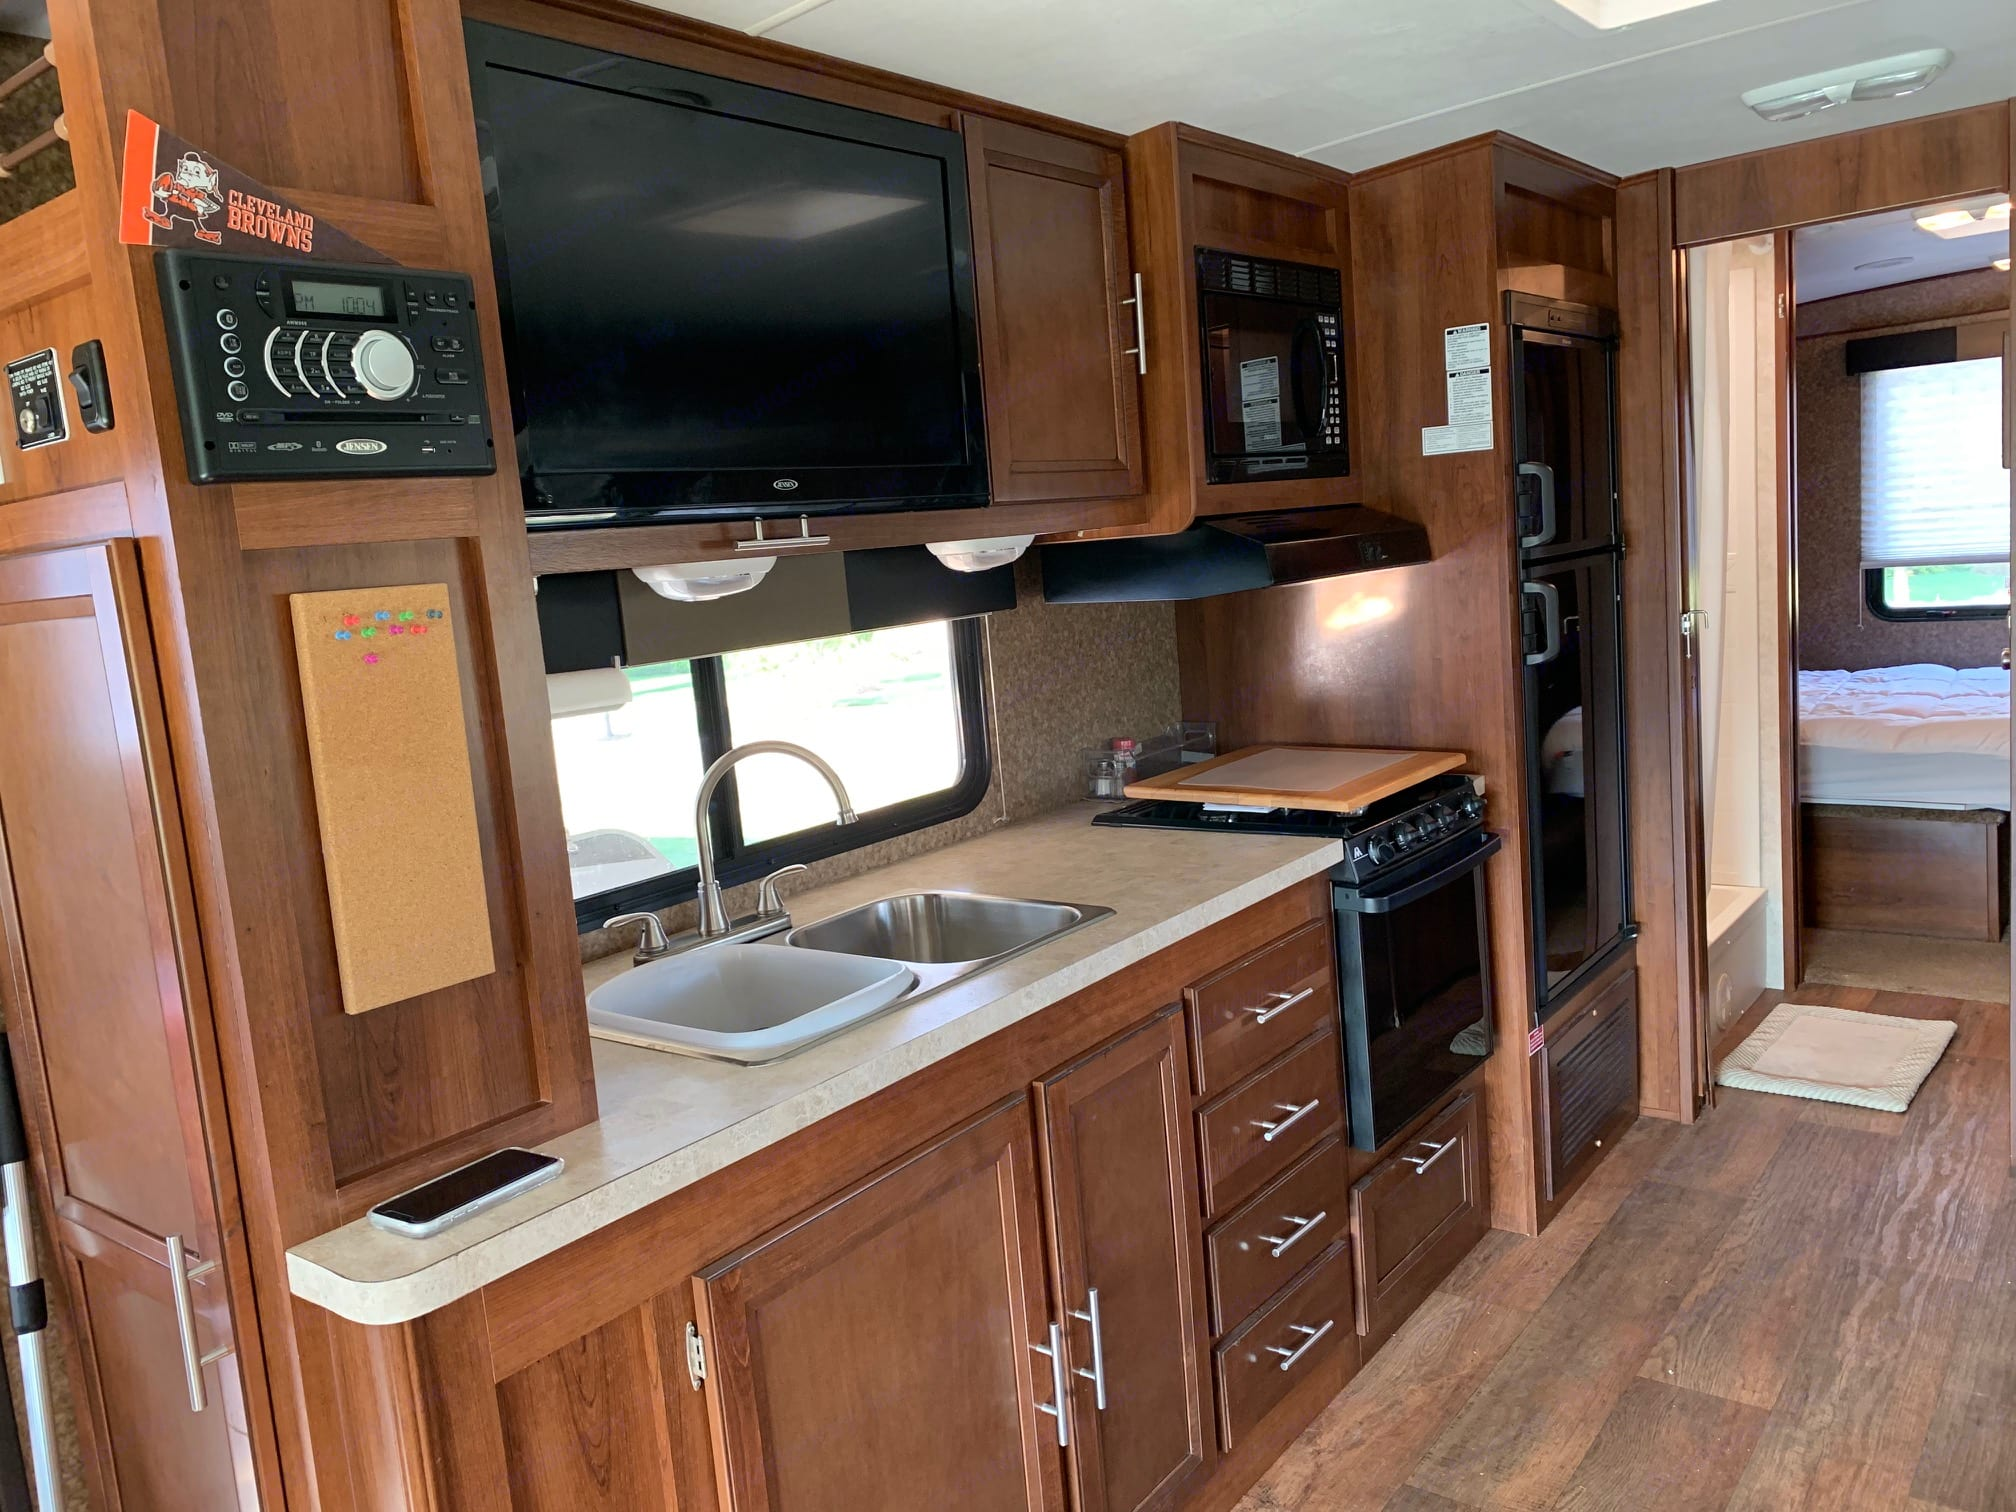 Pantry behind big screen TV. Forest River FR3 2014